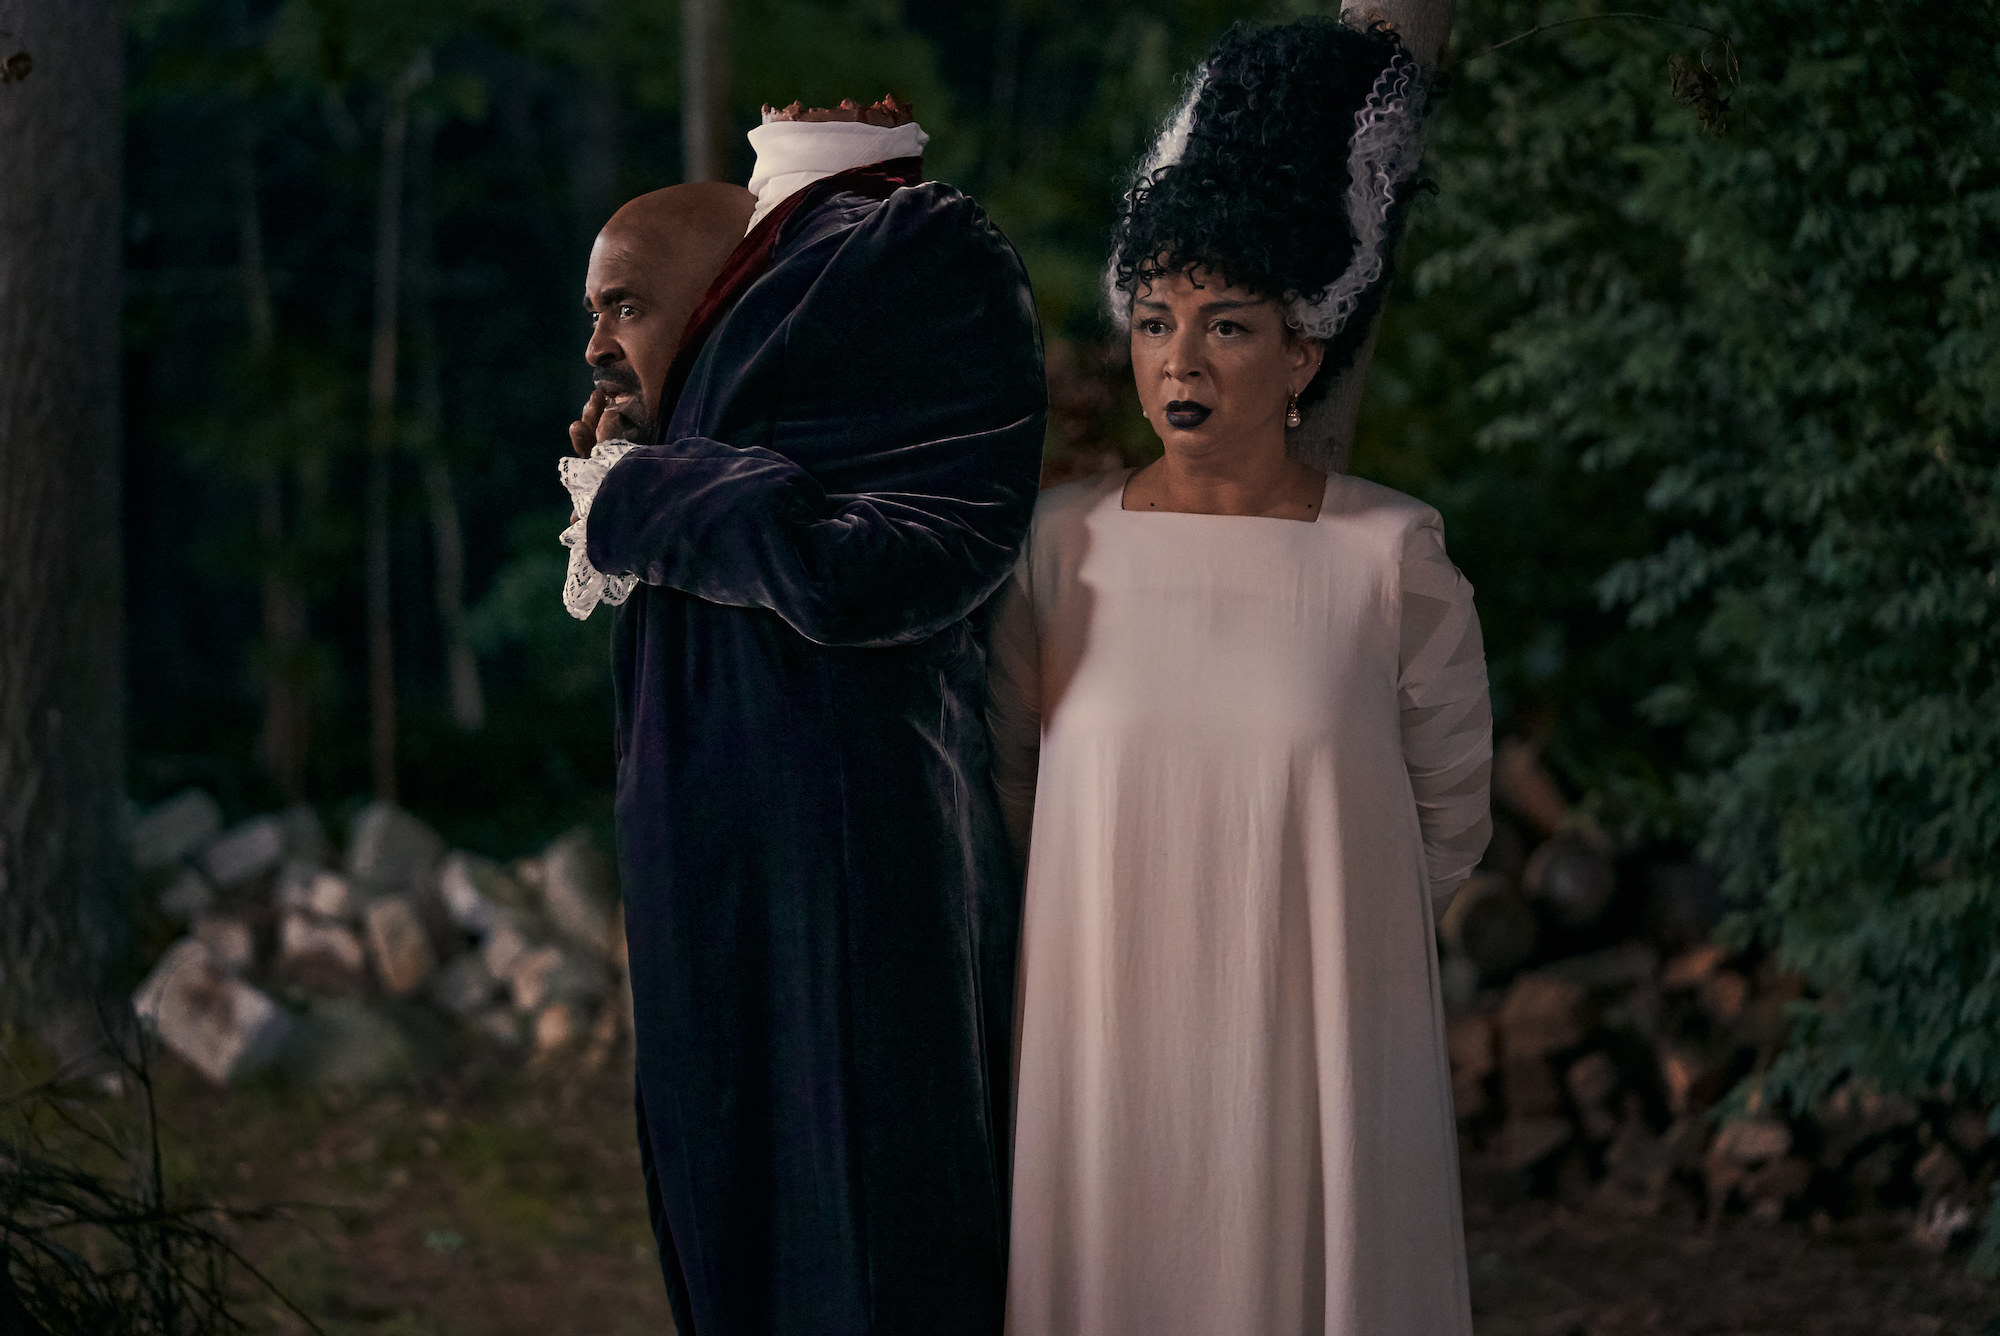 Tim Meadows and Maya Rudolph dressed as The Headless Horseman and The Bride of Frankenstein